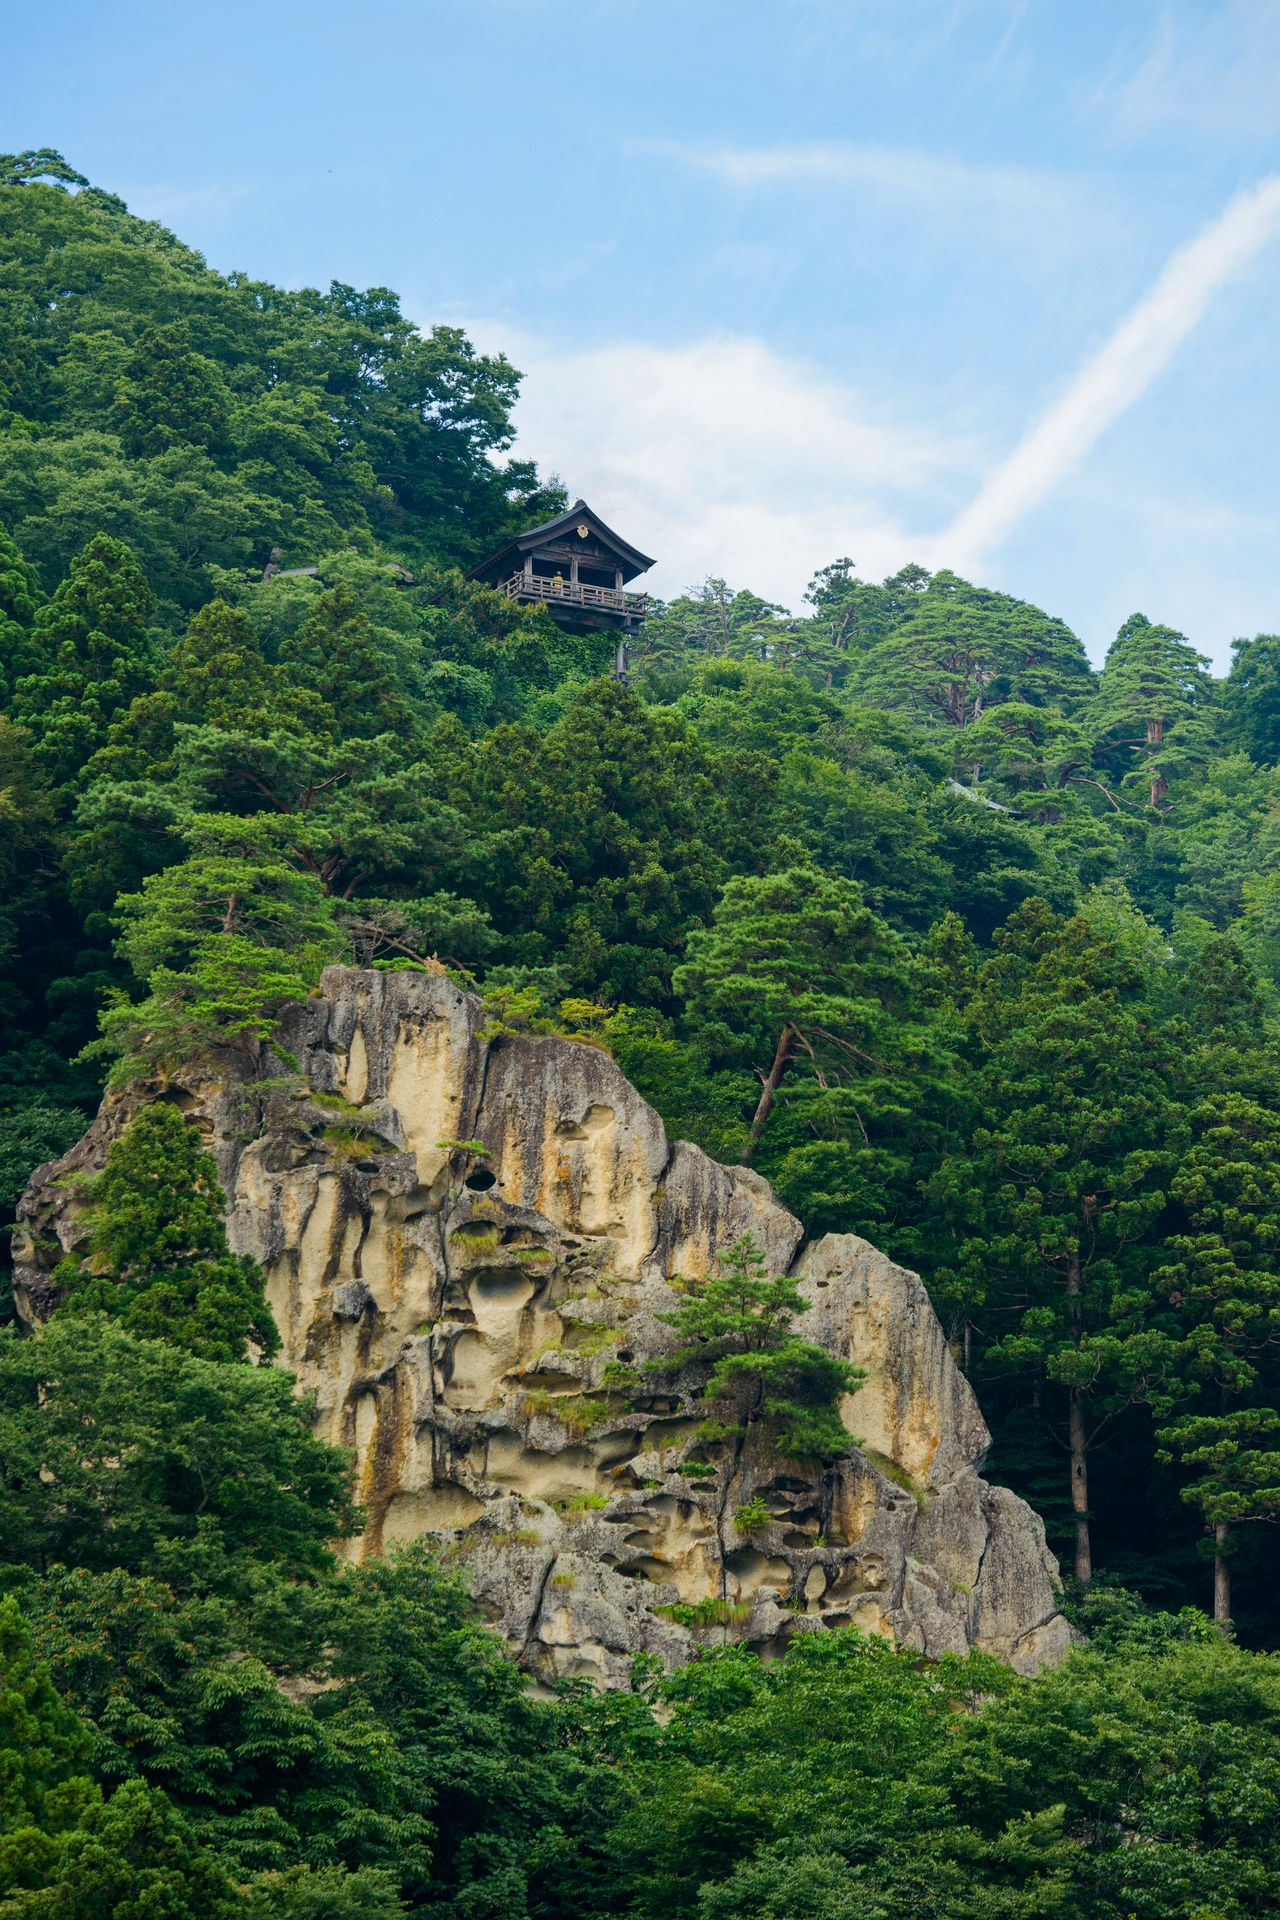 Tainaidō, out of bounds to ordinary worshippers, stands atop a cliff. (Photo courtesy of the Yamagata Tourist Association)